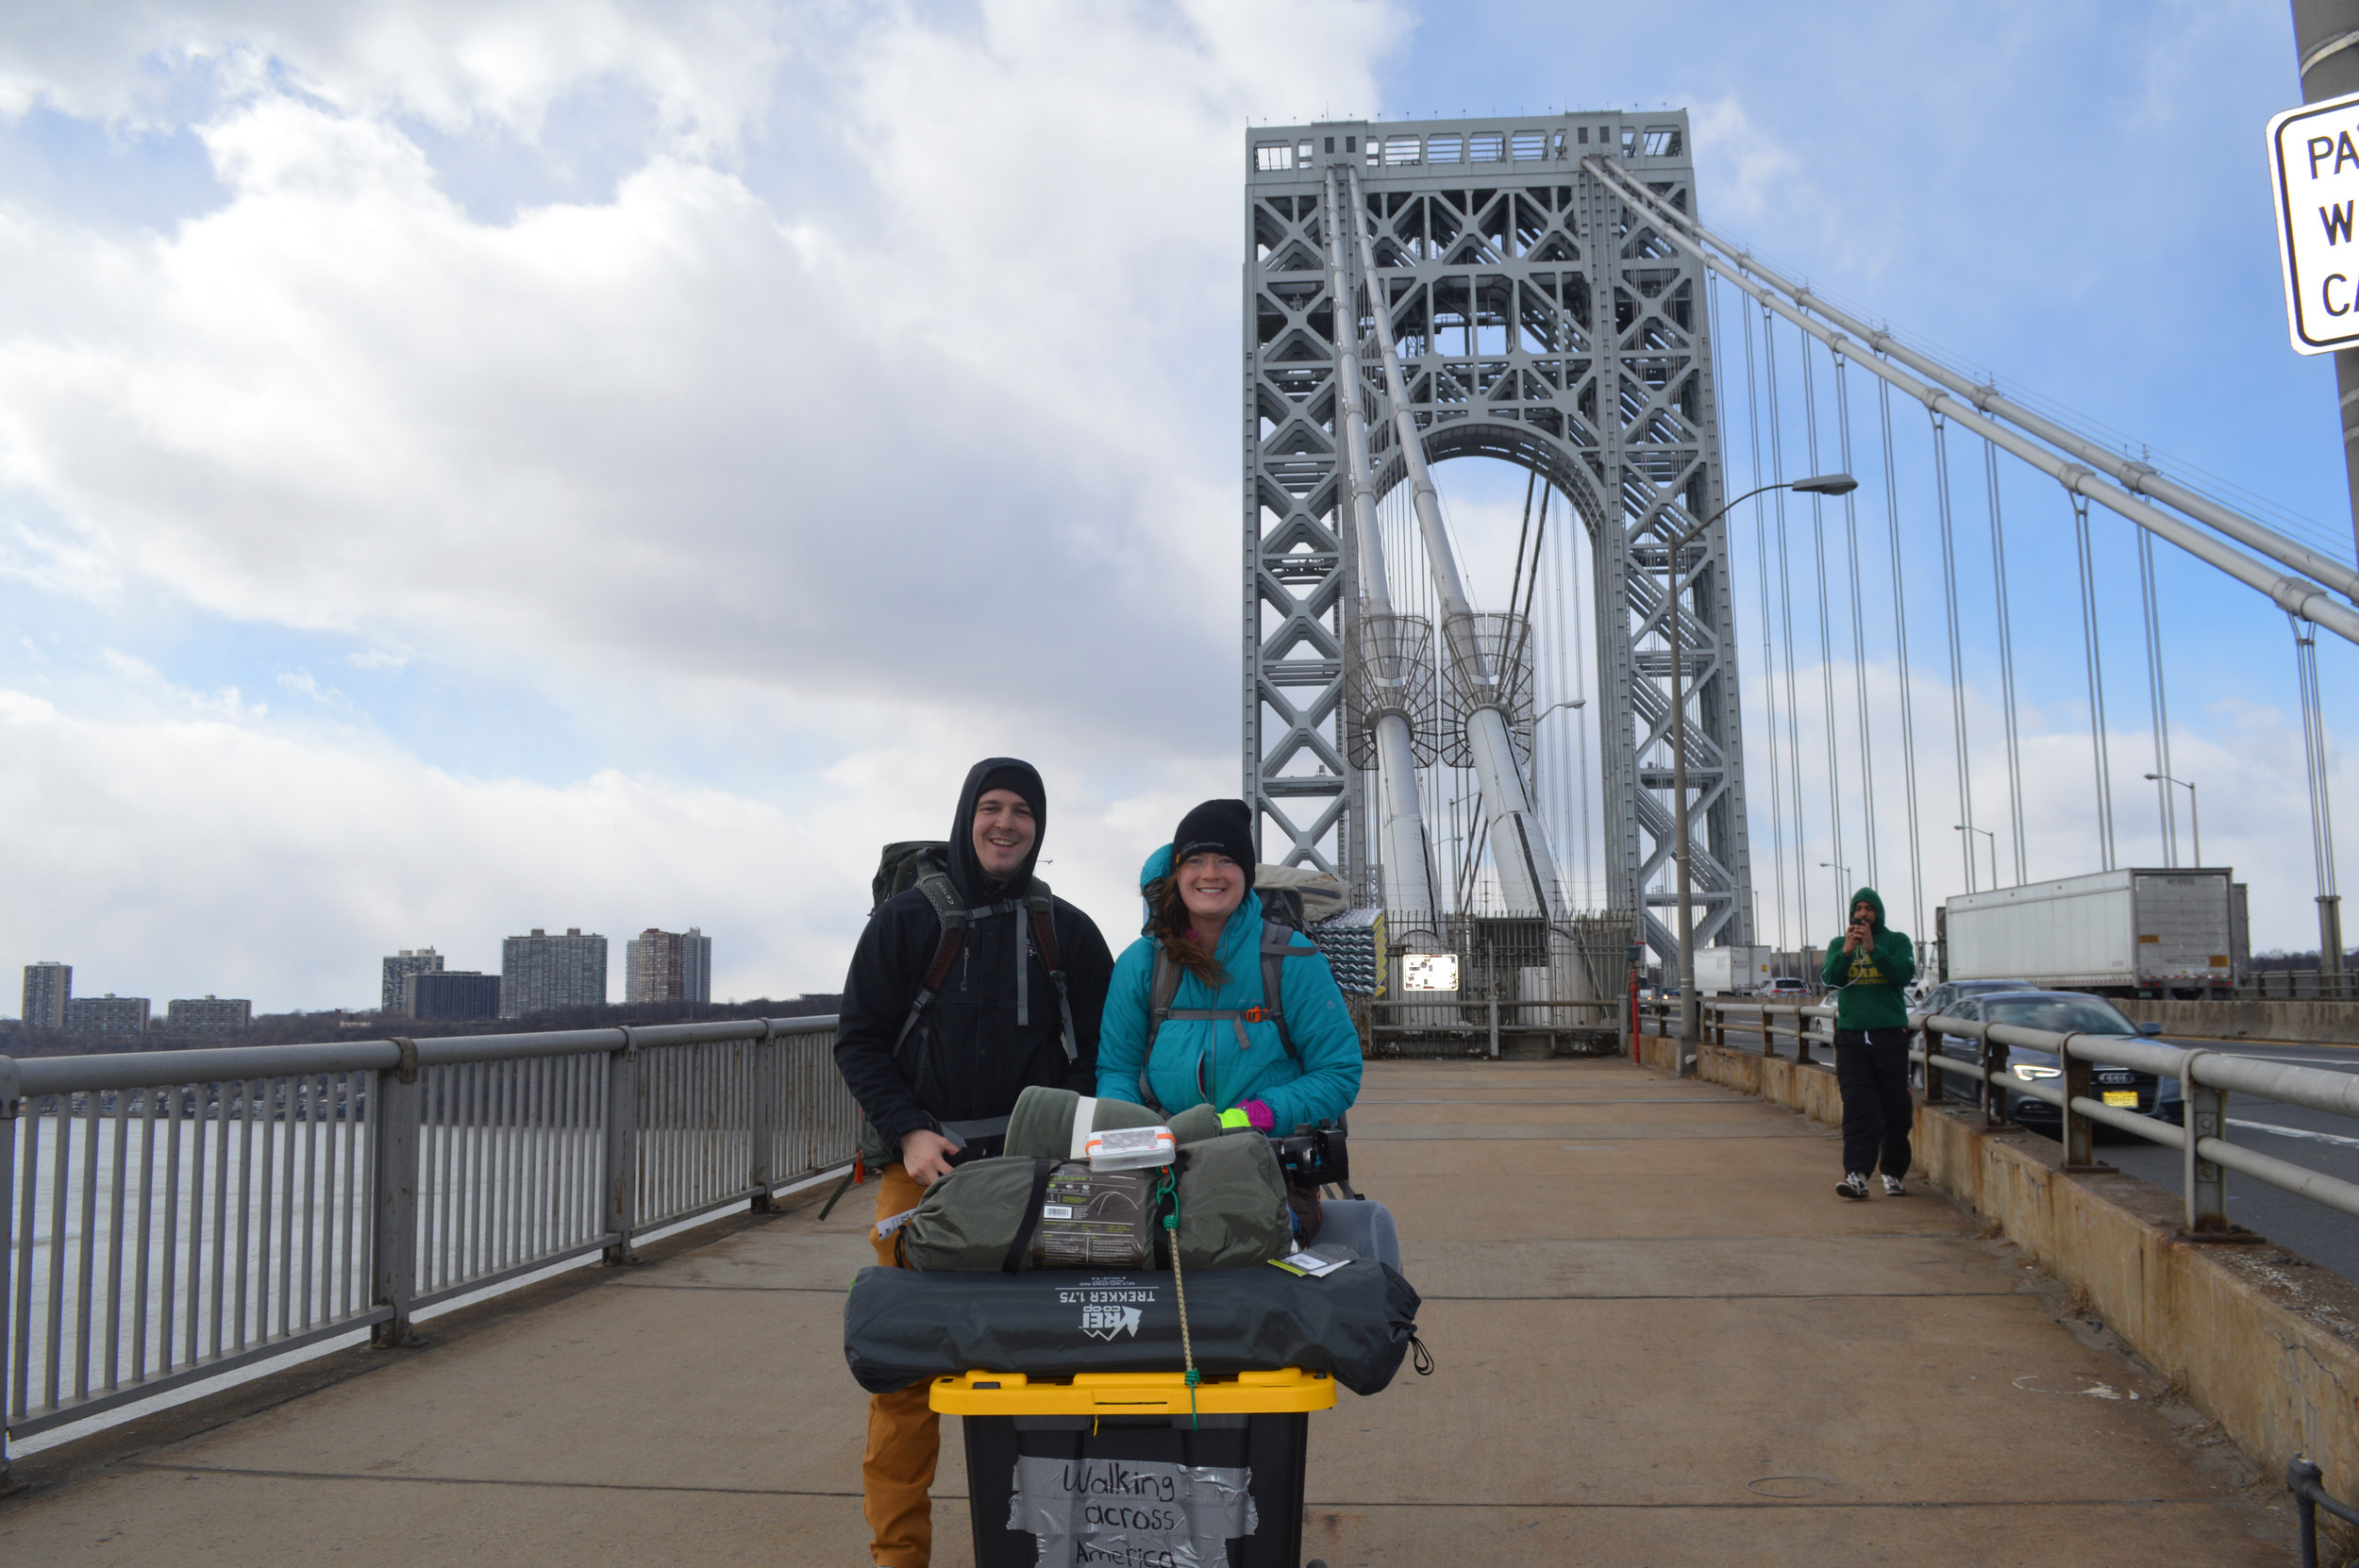 Daniel Finnegan, left, and Addy Bongaarts, crossed the George Washington Bridge during their journey across the country.